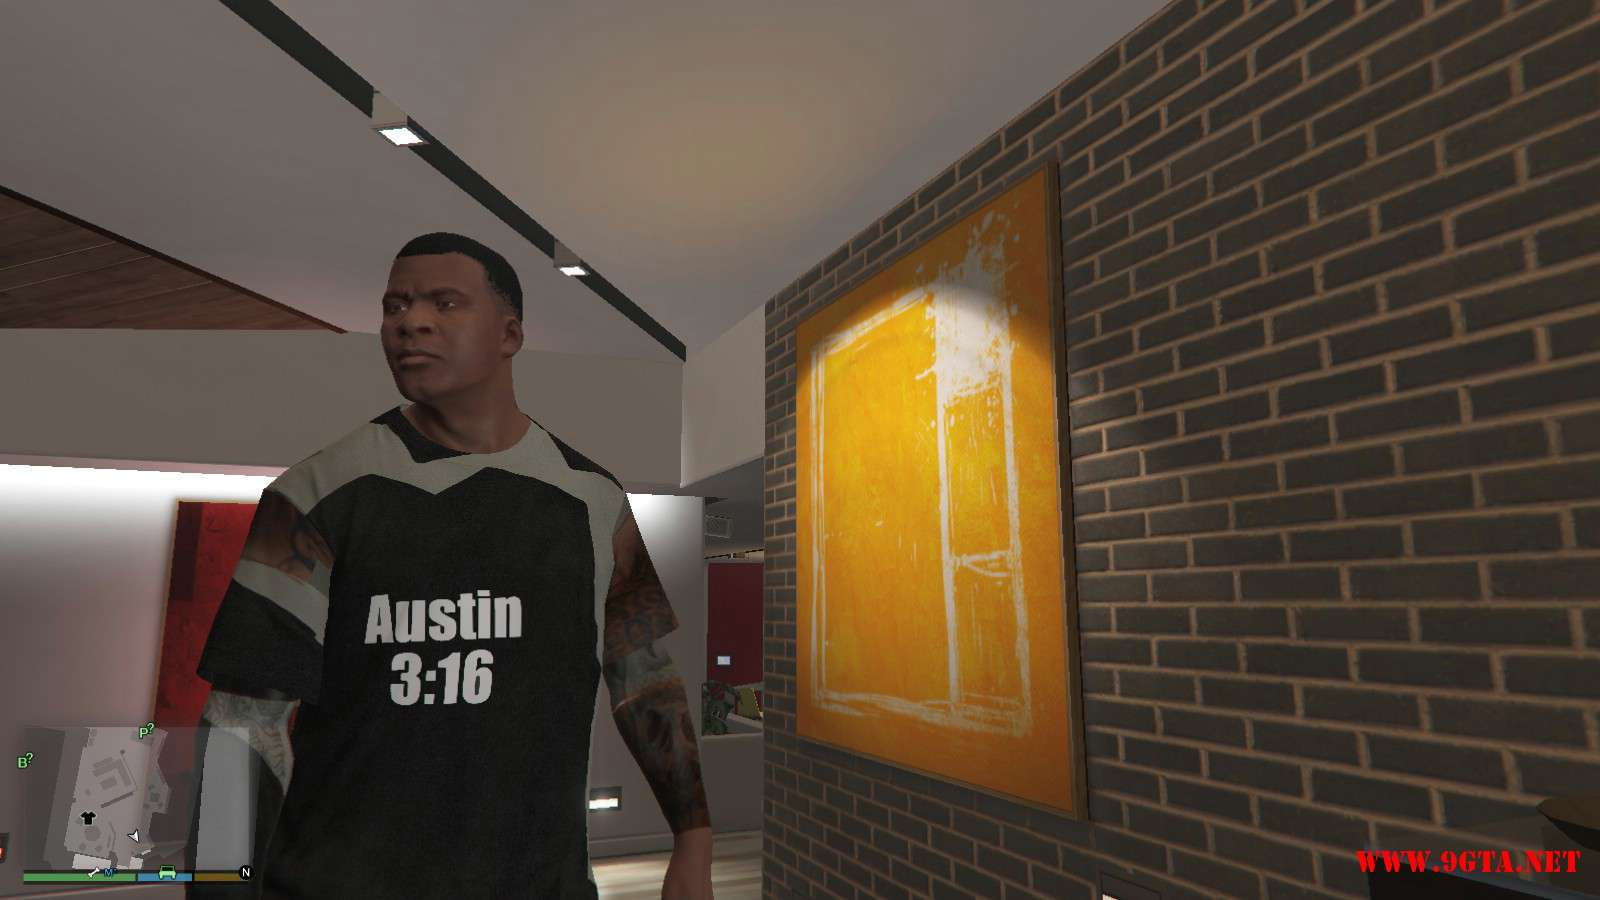 WWE Stone Cold Steve Austin Shirt GTA5 Mods (1)